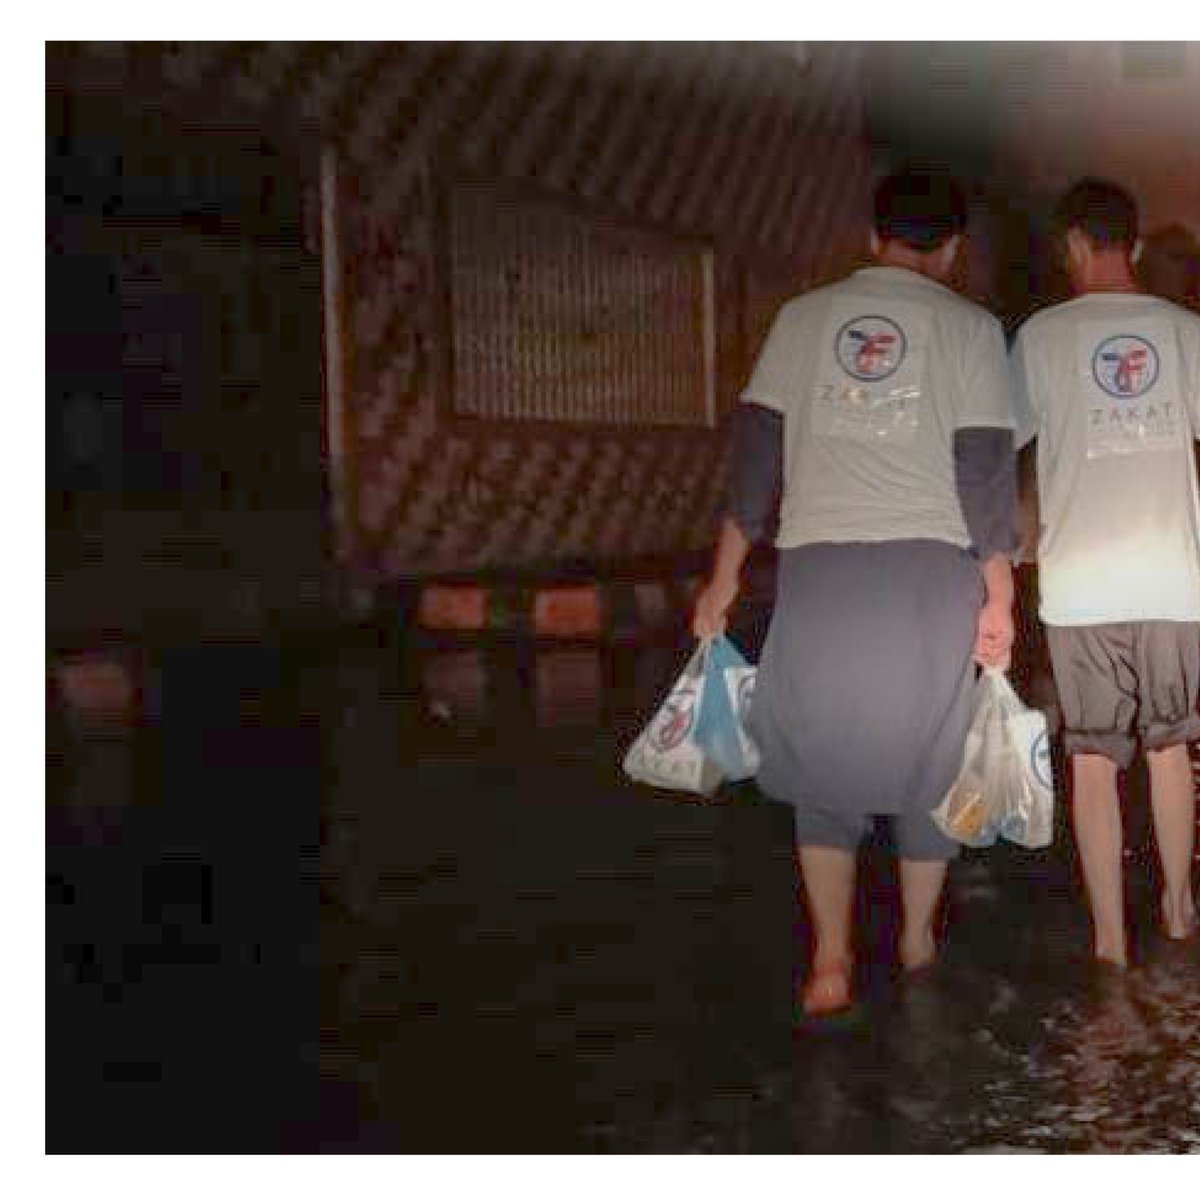 Our volunteers work around the ⏱ to deliver #aid to those in need. We are in #Karachi giving cooked food to those impacted by #flooding. Won't you help? https://t.co/ldxl6lF6LH https://t.co/18gI44dsfa